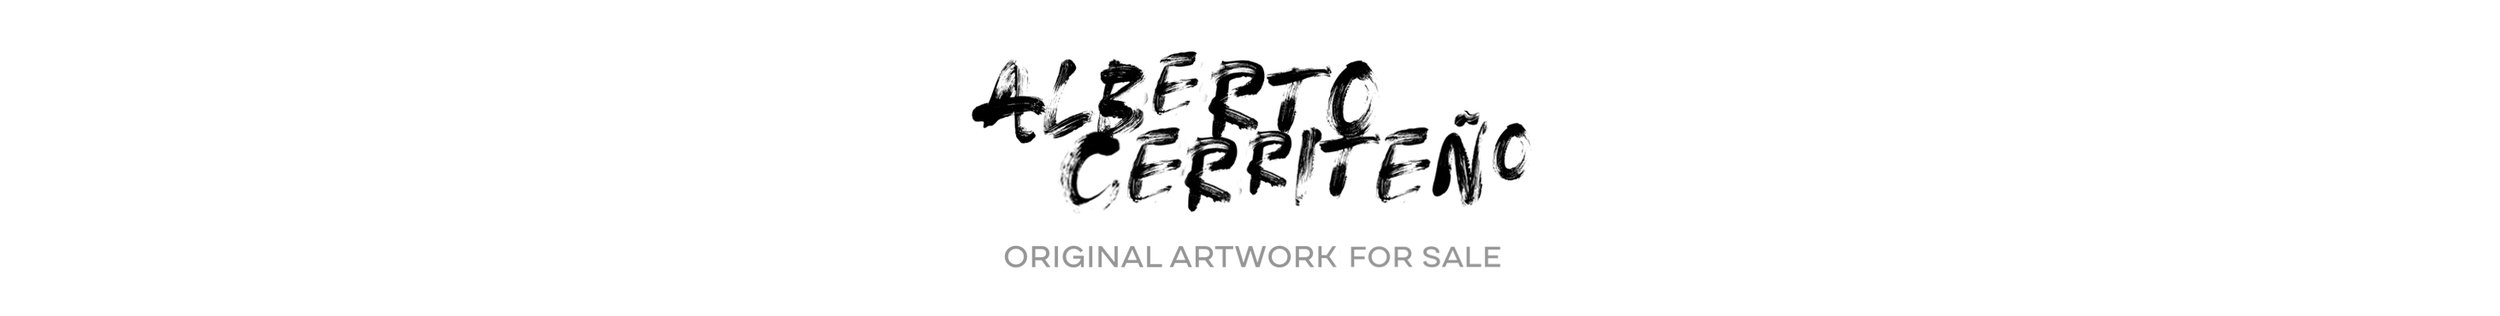 The Art of Alberto Cerriteno